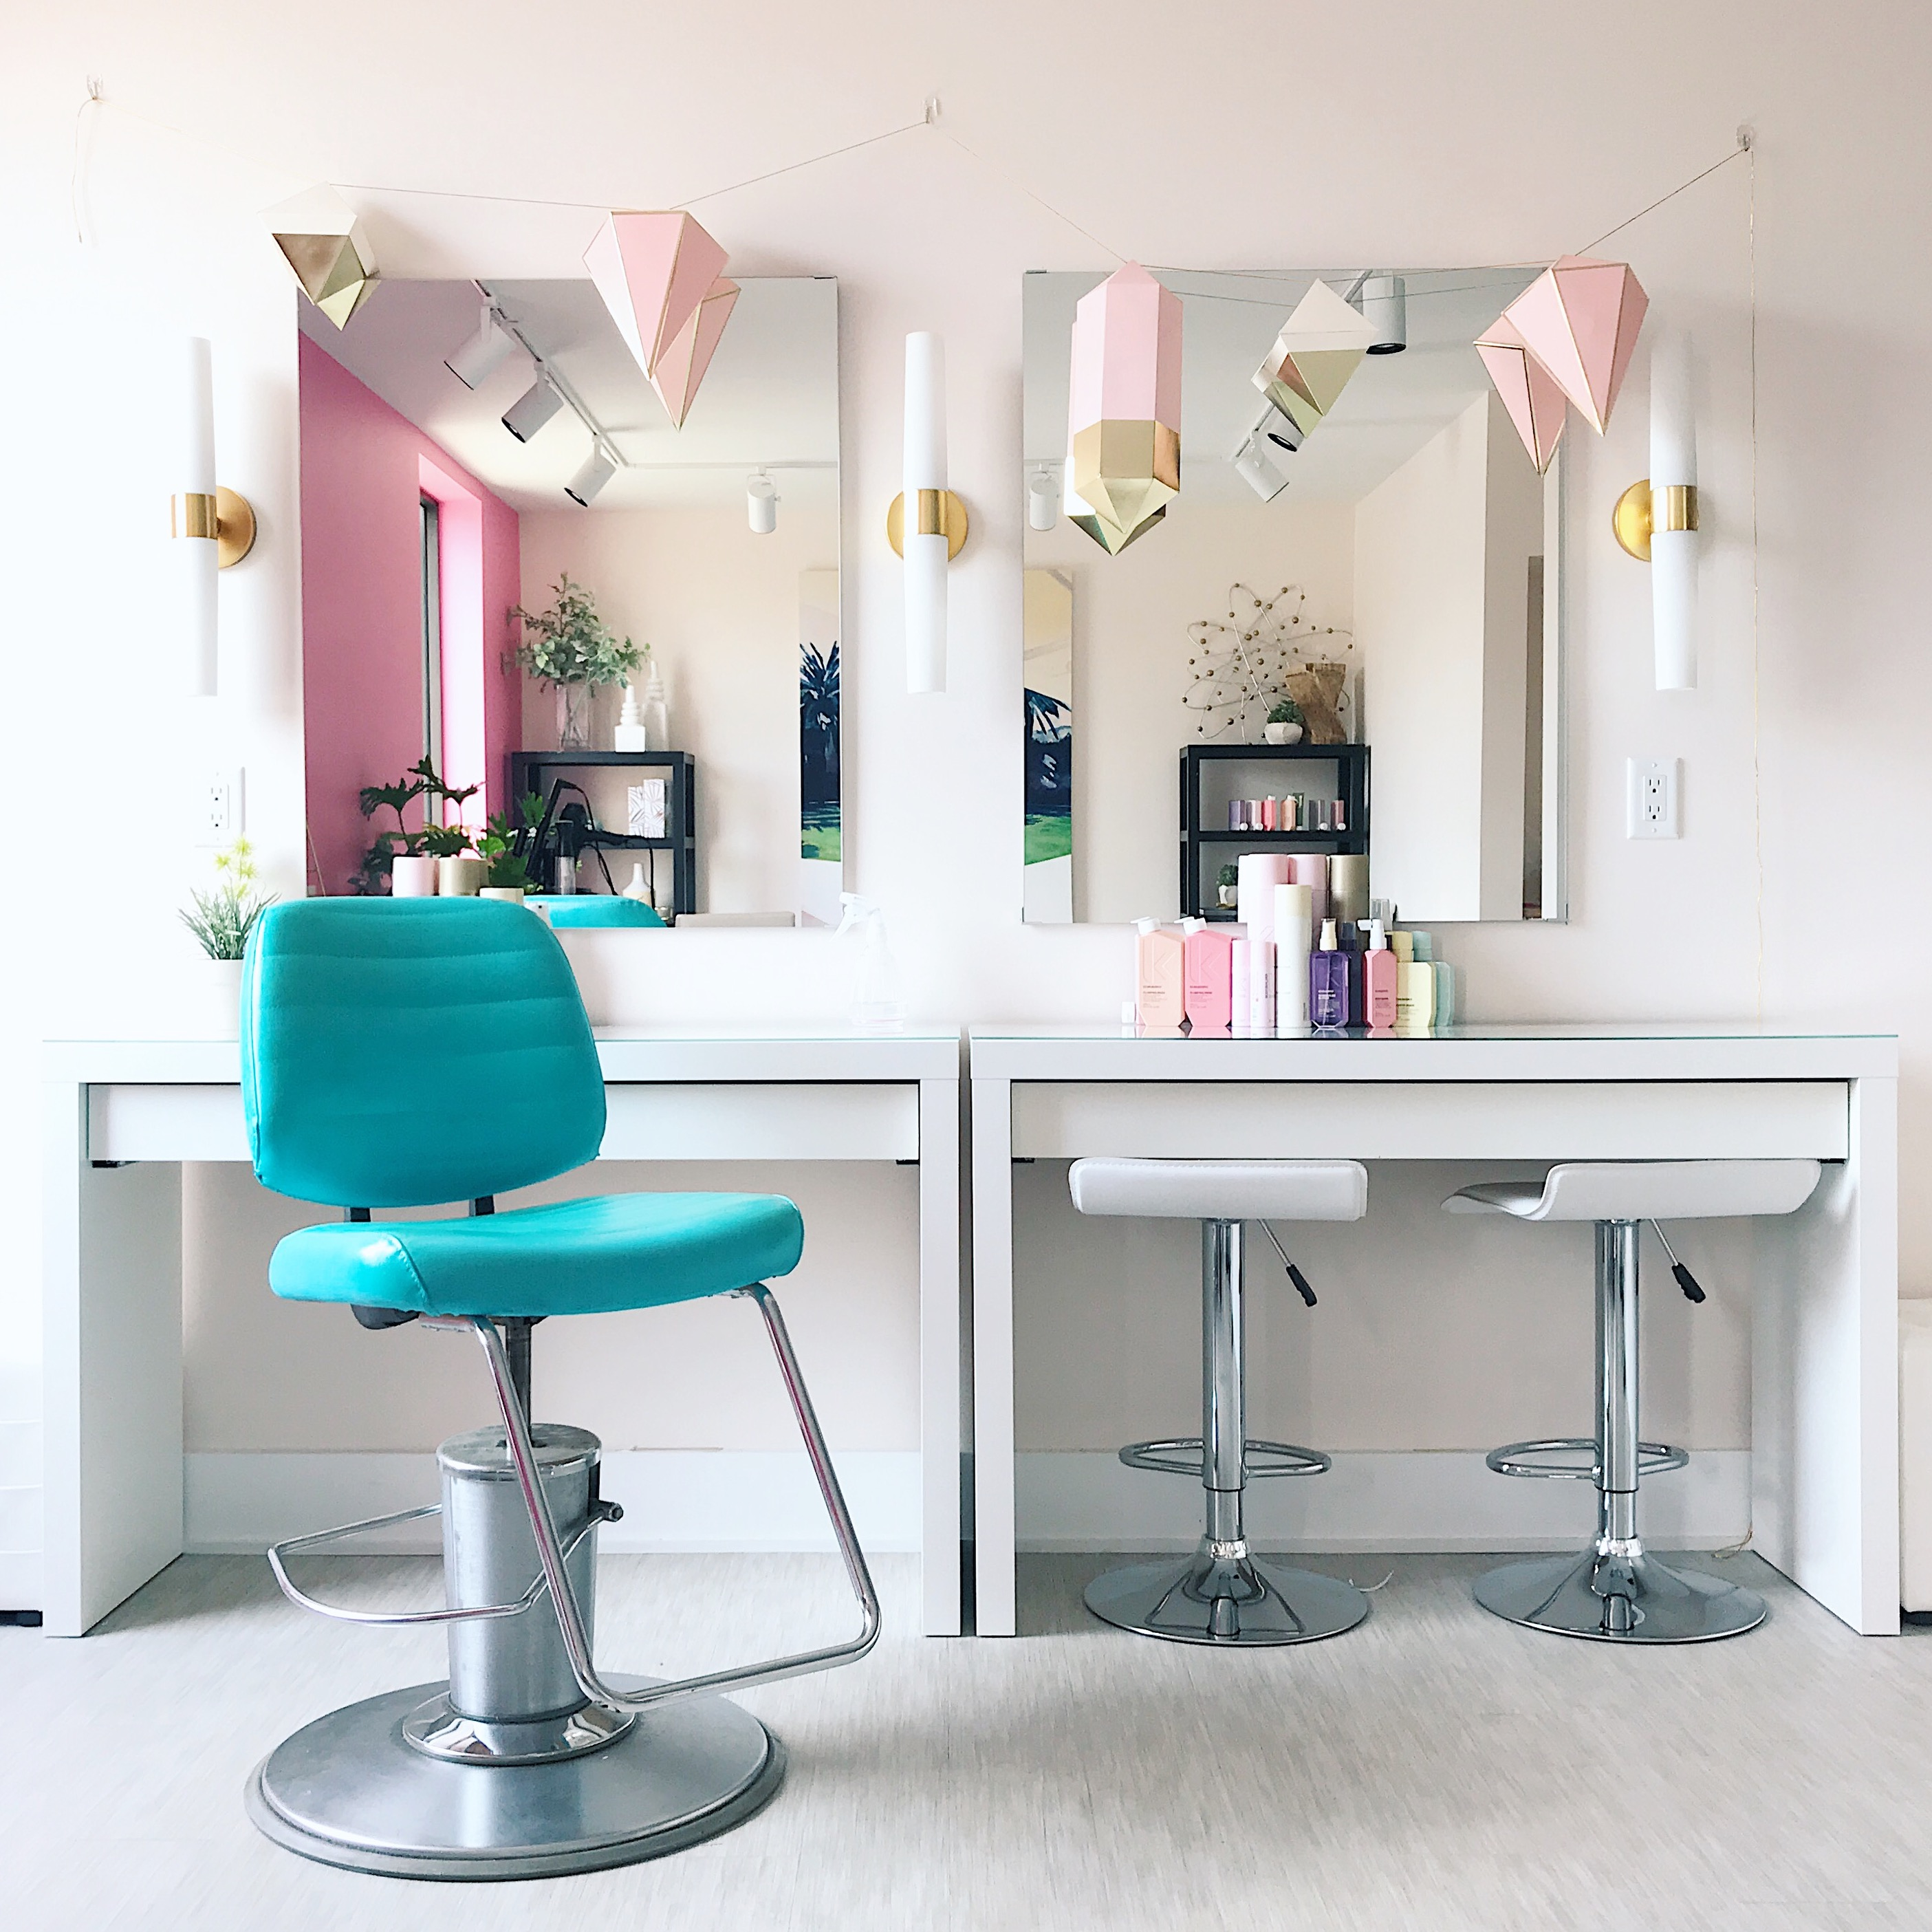 Photo of the Ladybird Styling Full Service Hair and Makeup Salon